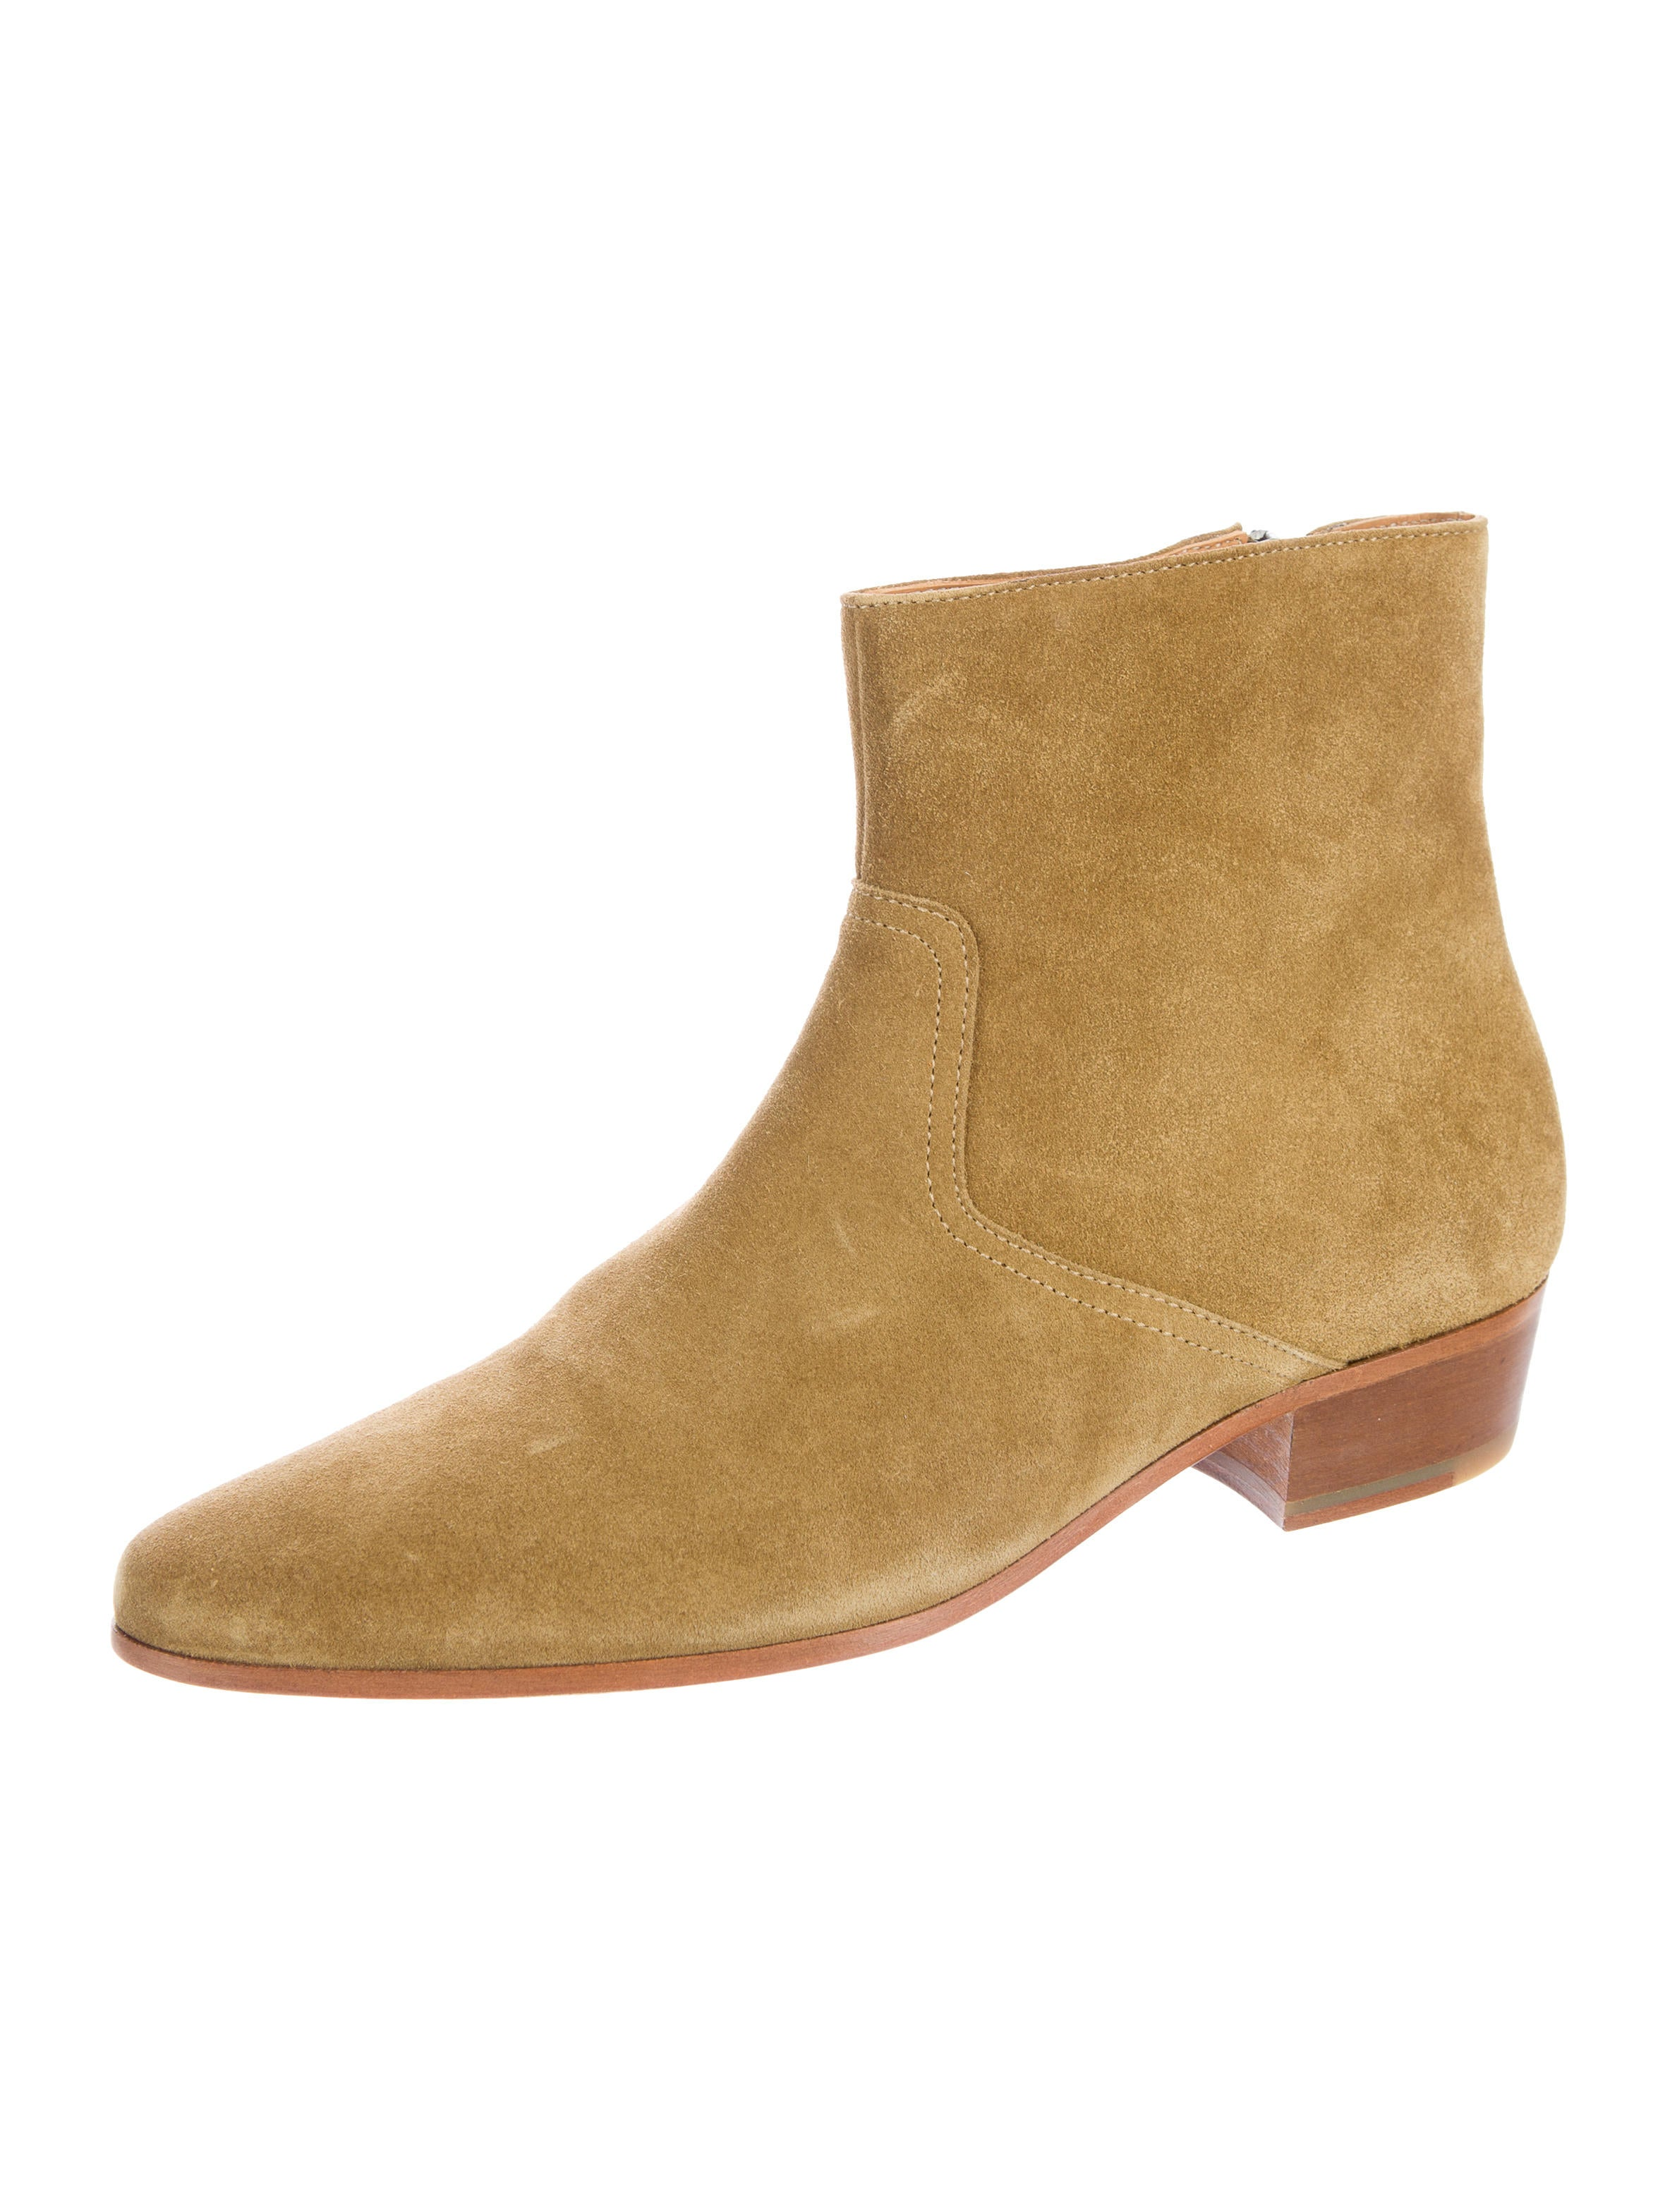 Iro Aisling Ankle Boots w/ Tags sale in China store sale online visa payment cheap sale perfect 0qWZ16nVId